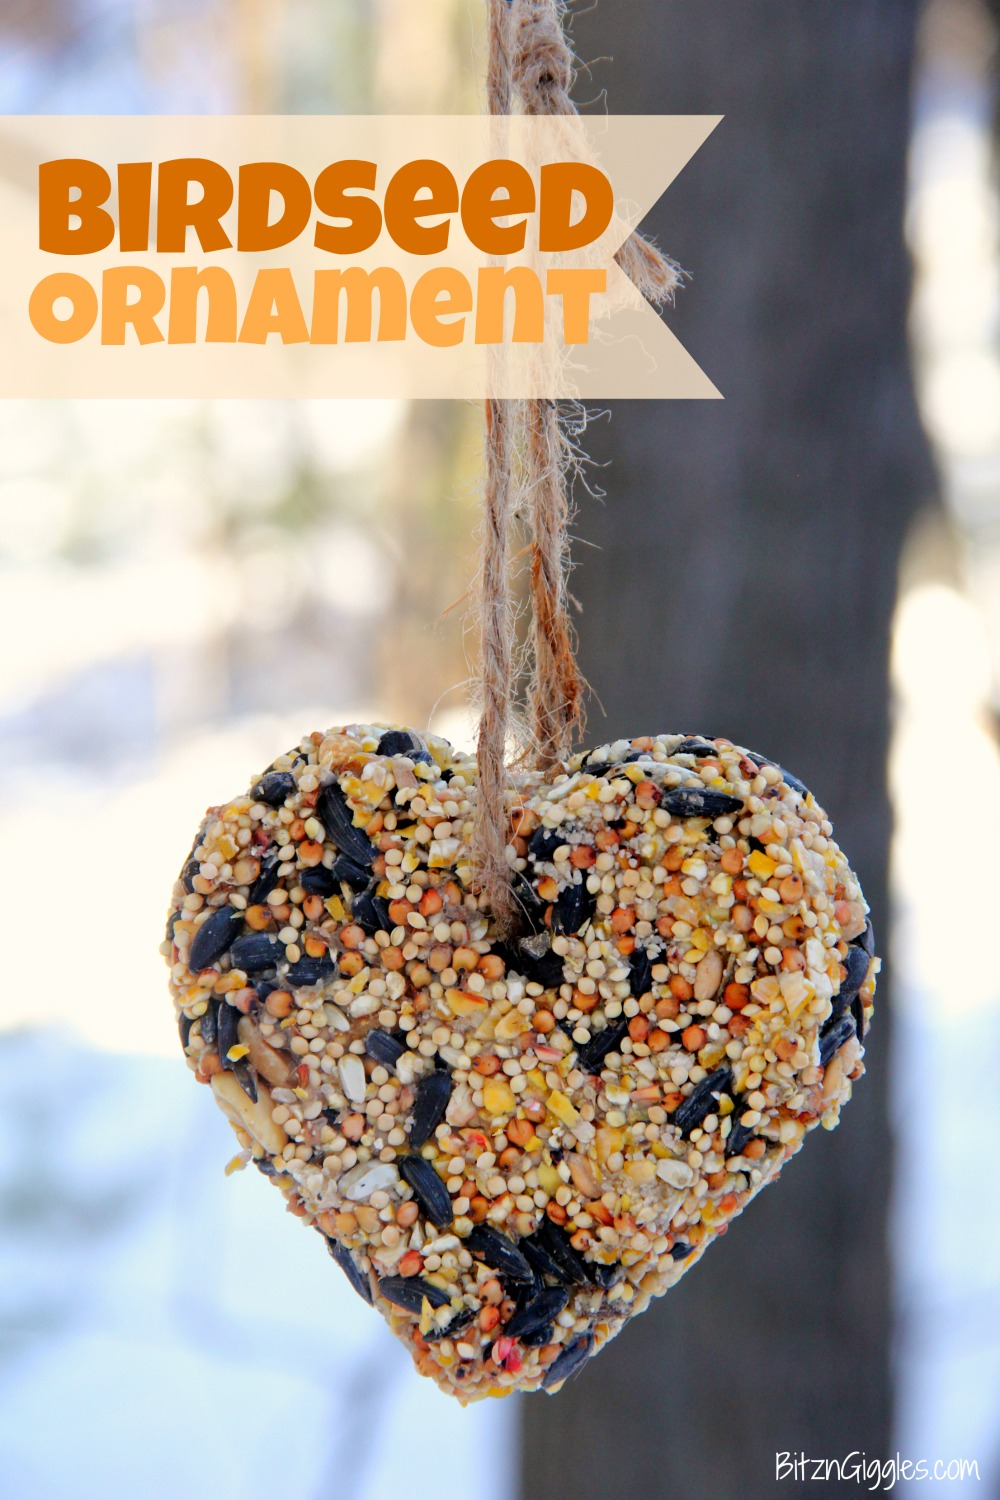 Birdseed ornament hanging from a tree